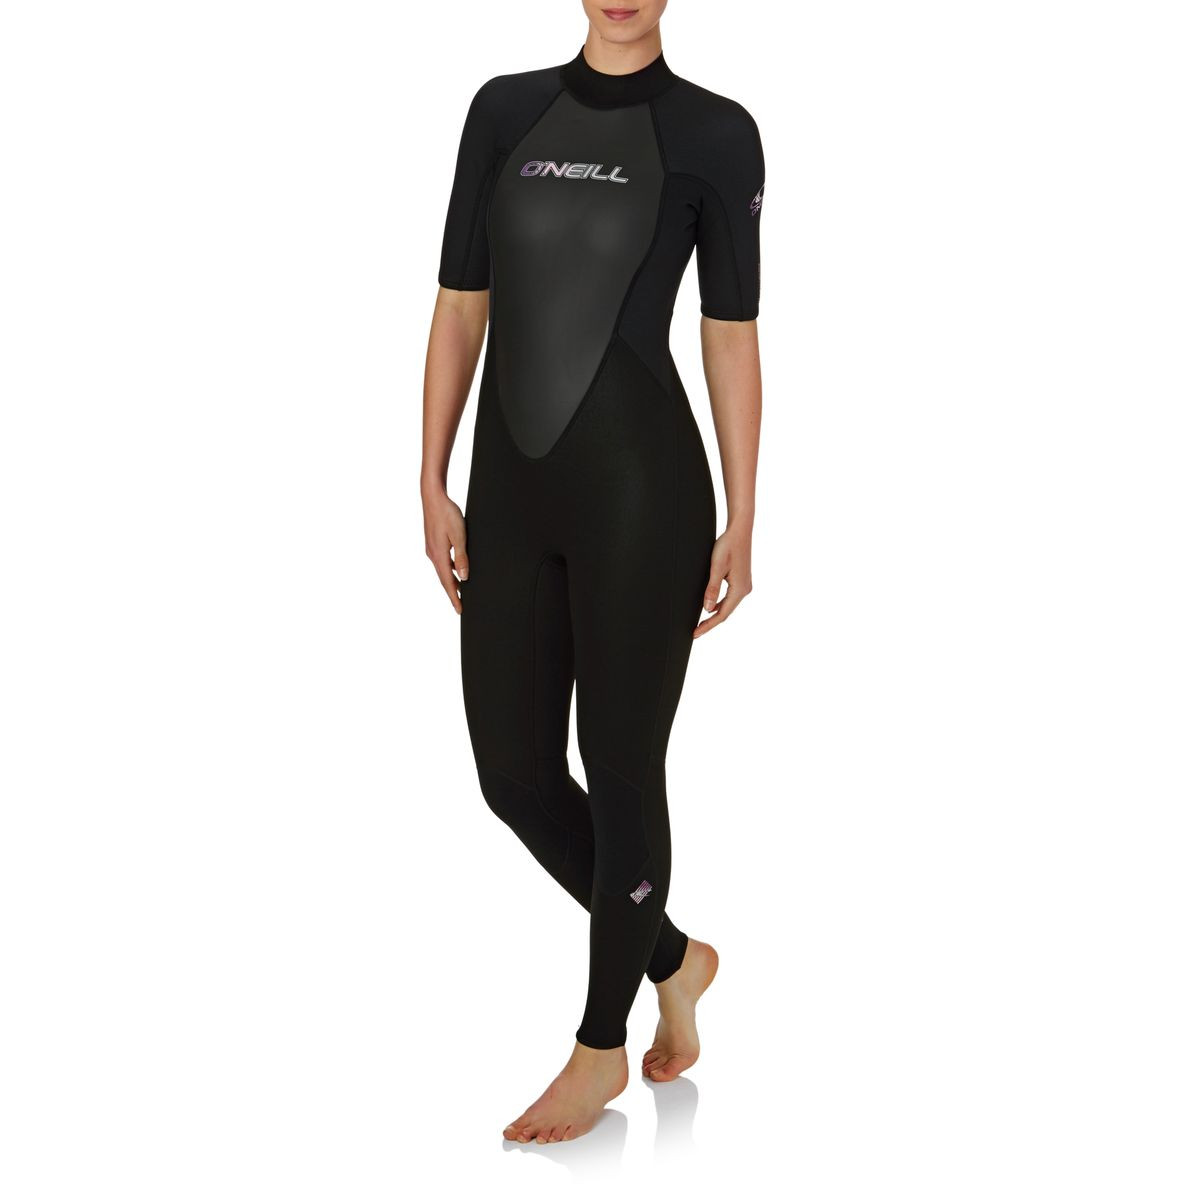 O'Neill Womens Reactor 3/2mm 2017 Back Zip Short Sleeve Wetsuit - Black/ Black/ Black